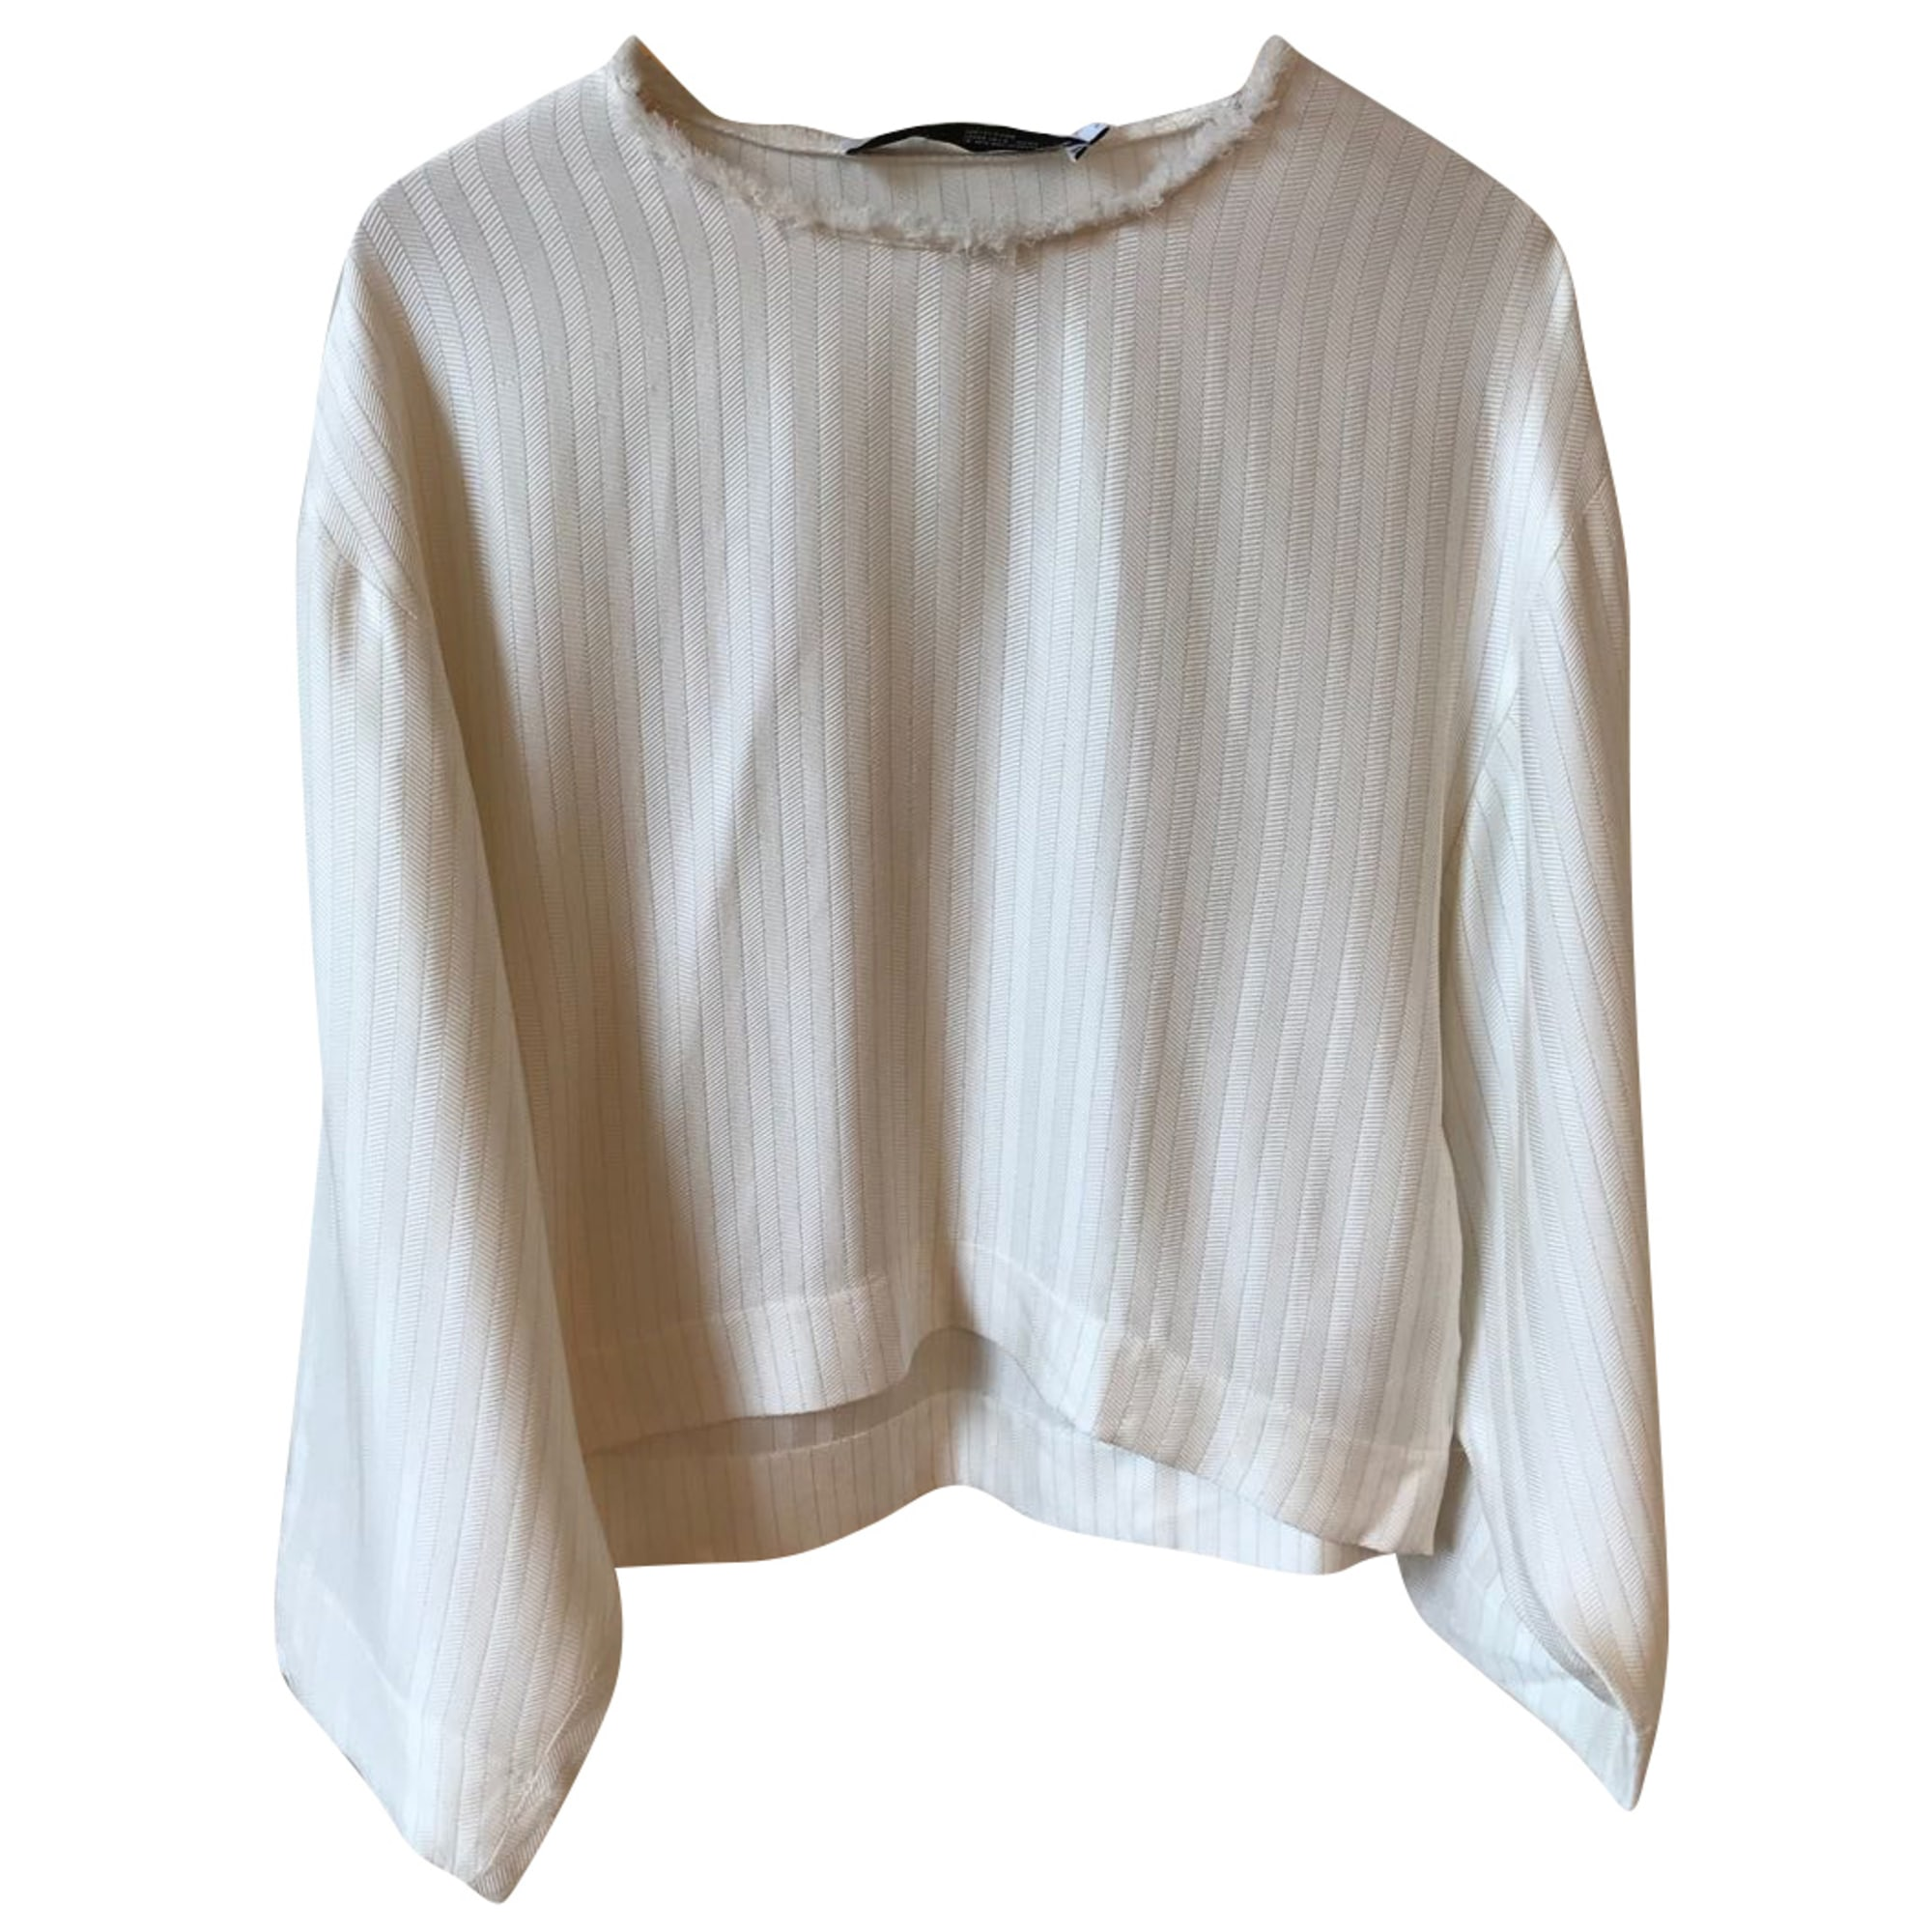 Top, T-shirt IRO White, off-white, ecru